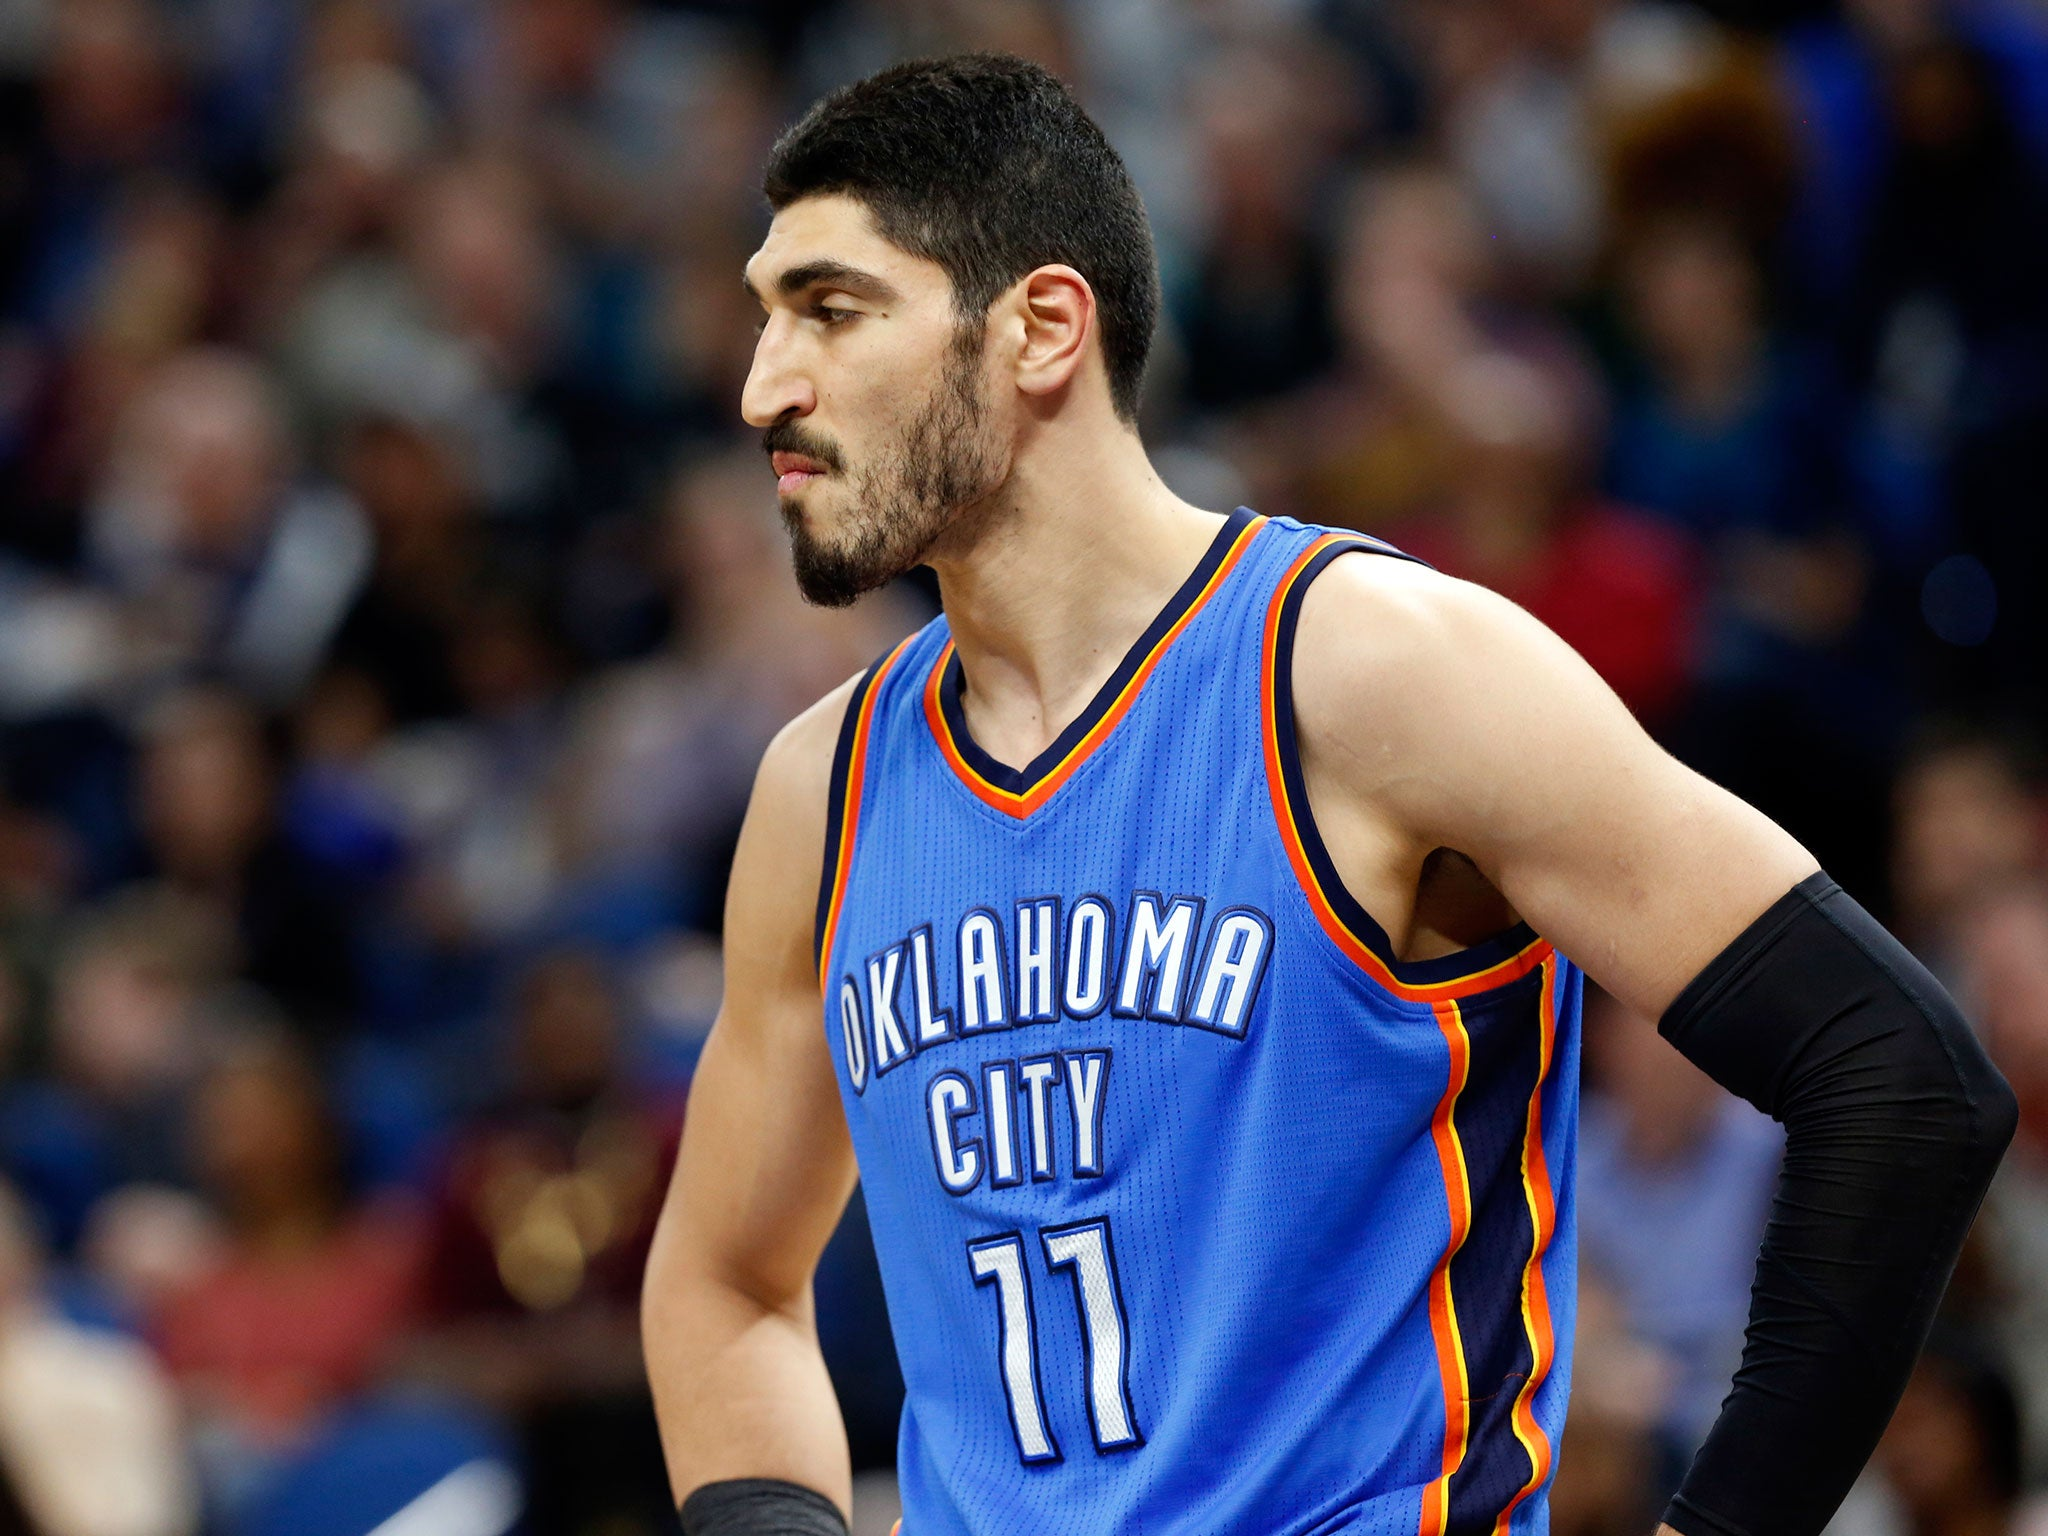 nba basketball player enes kanter held at romanian airport